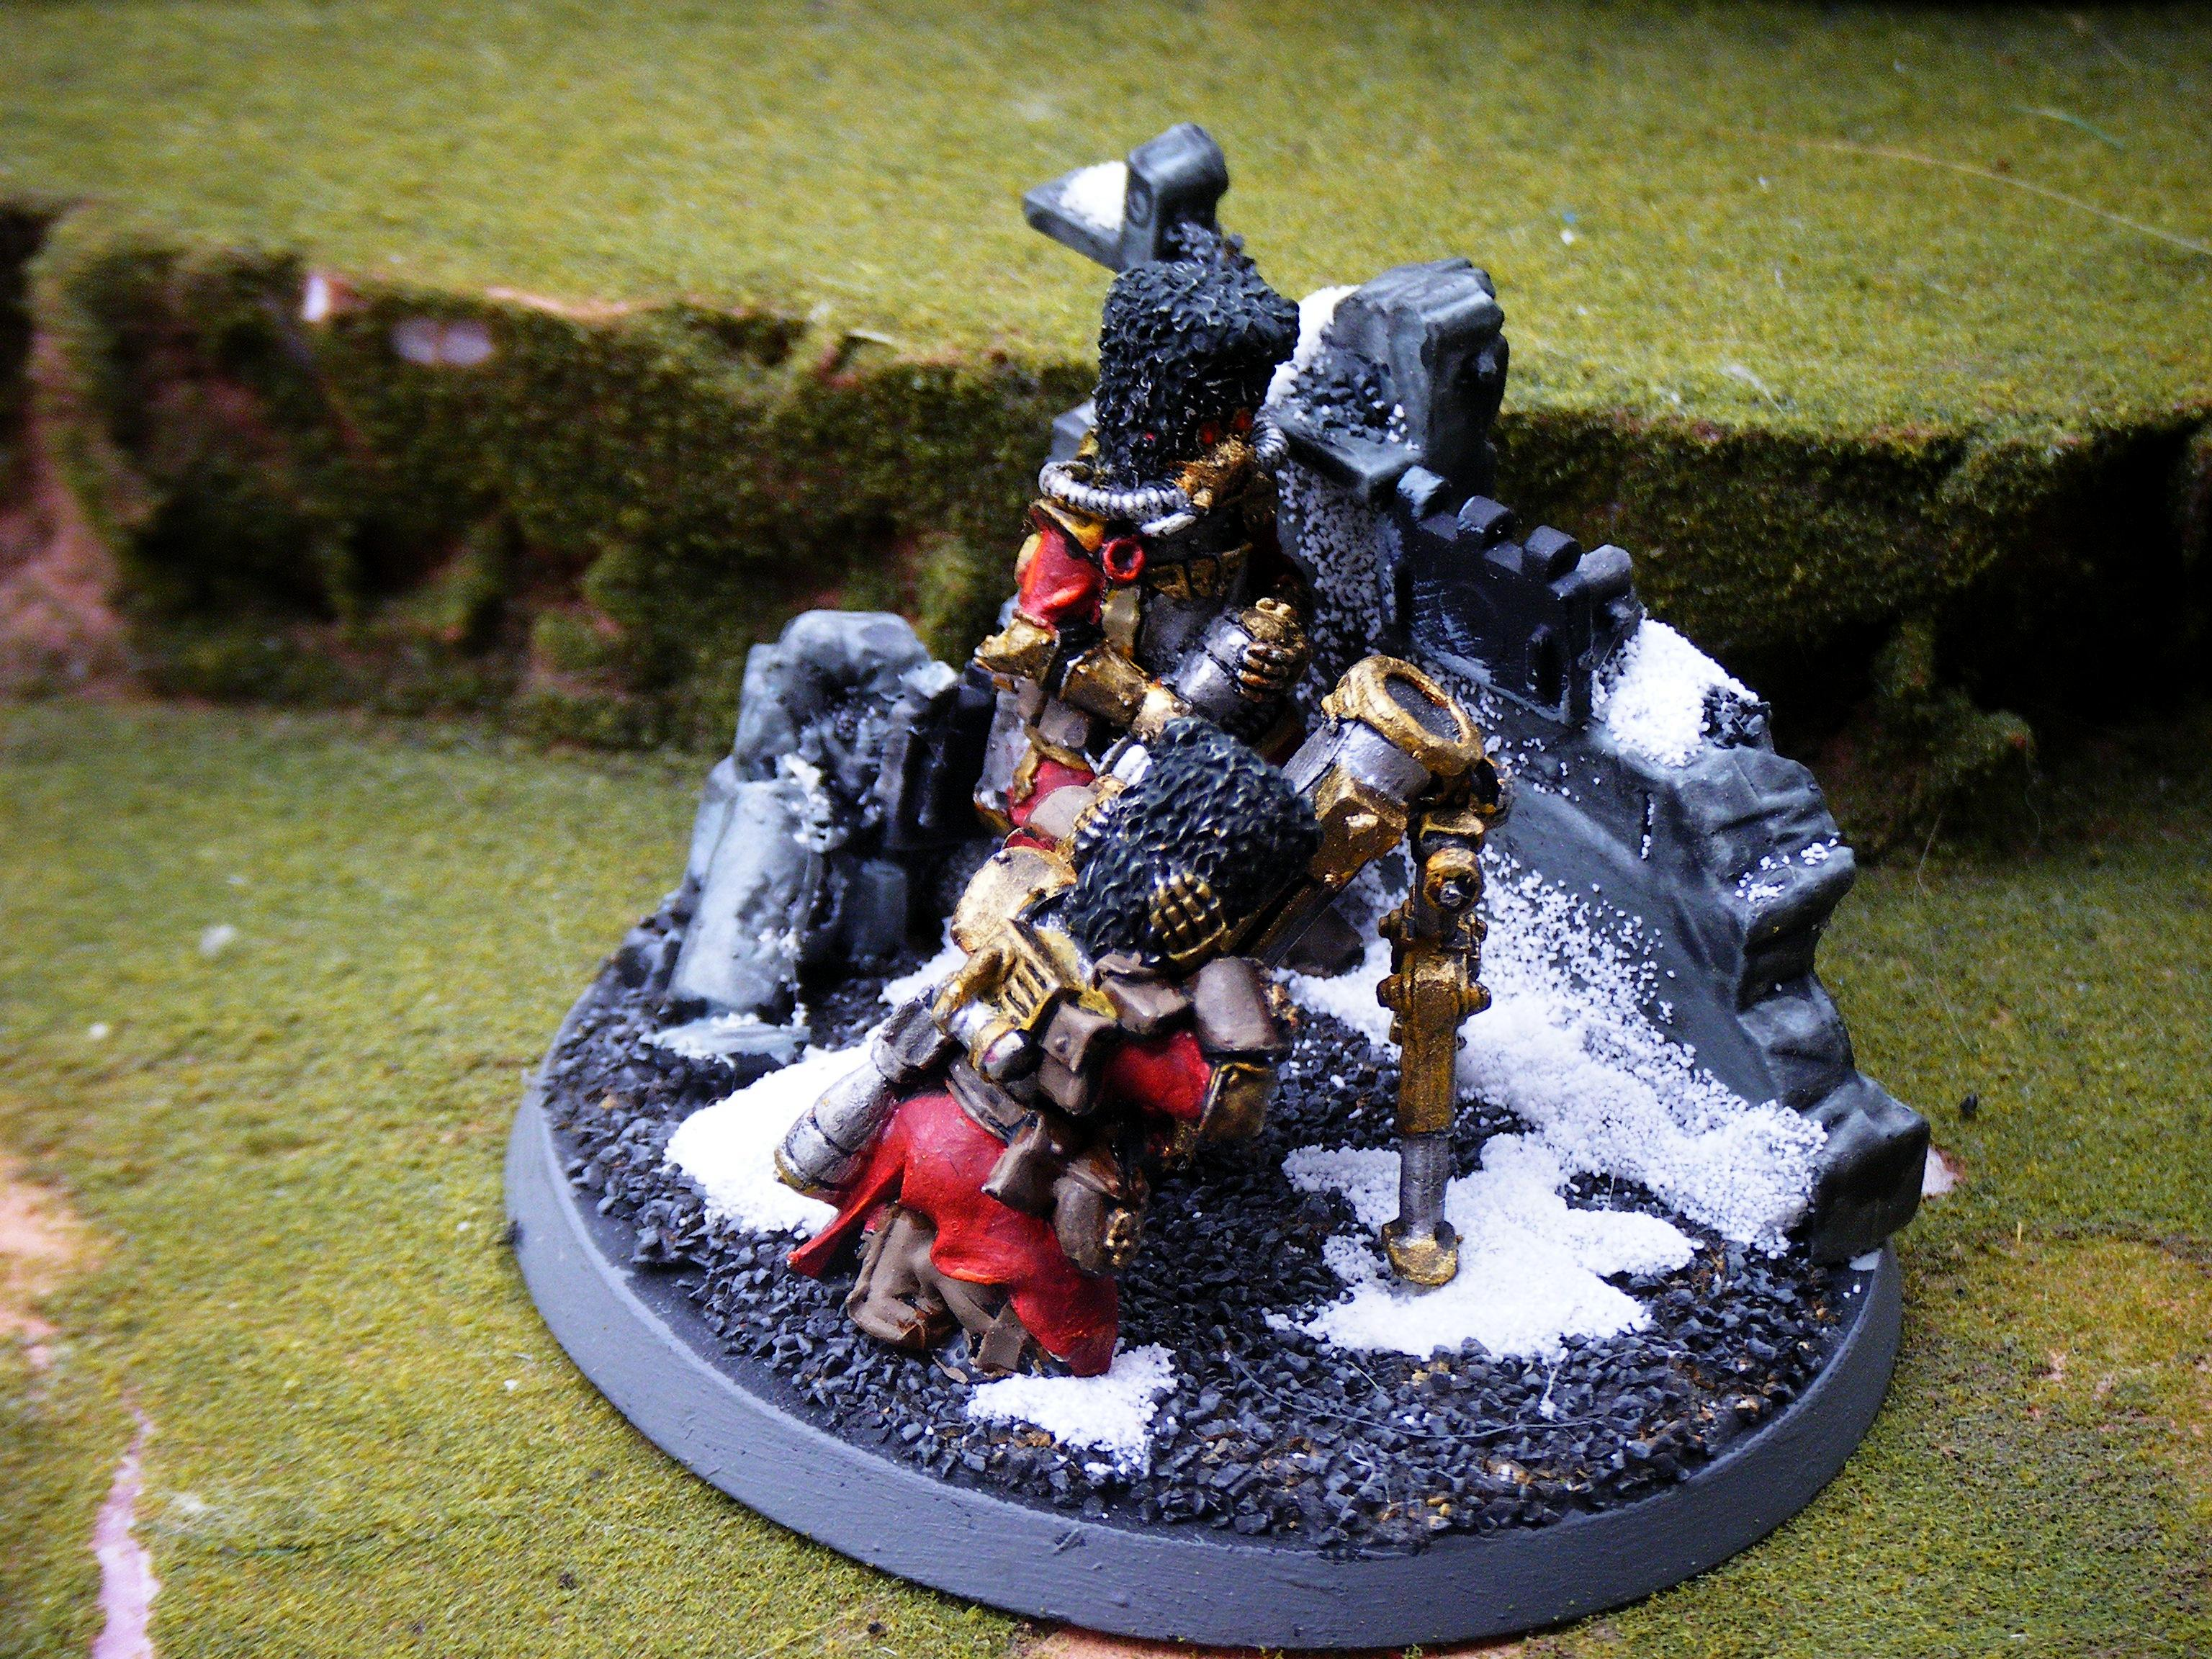 Imperial Guard, mortar team side